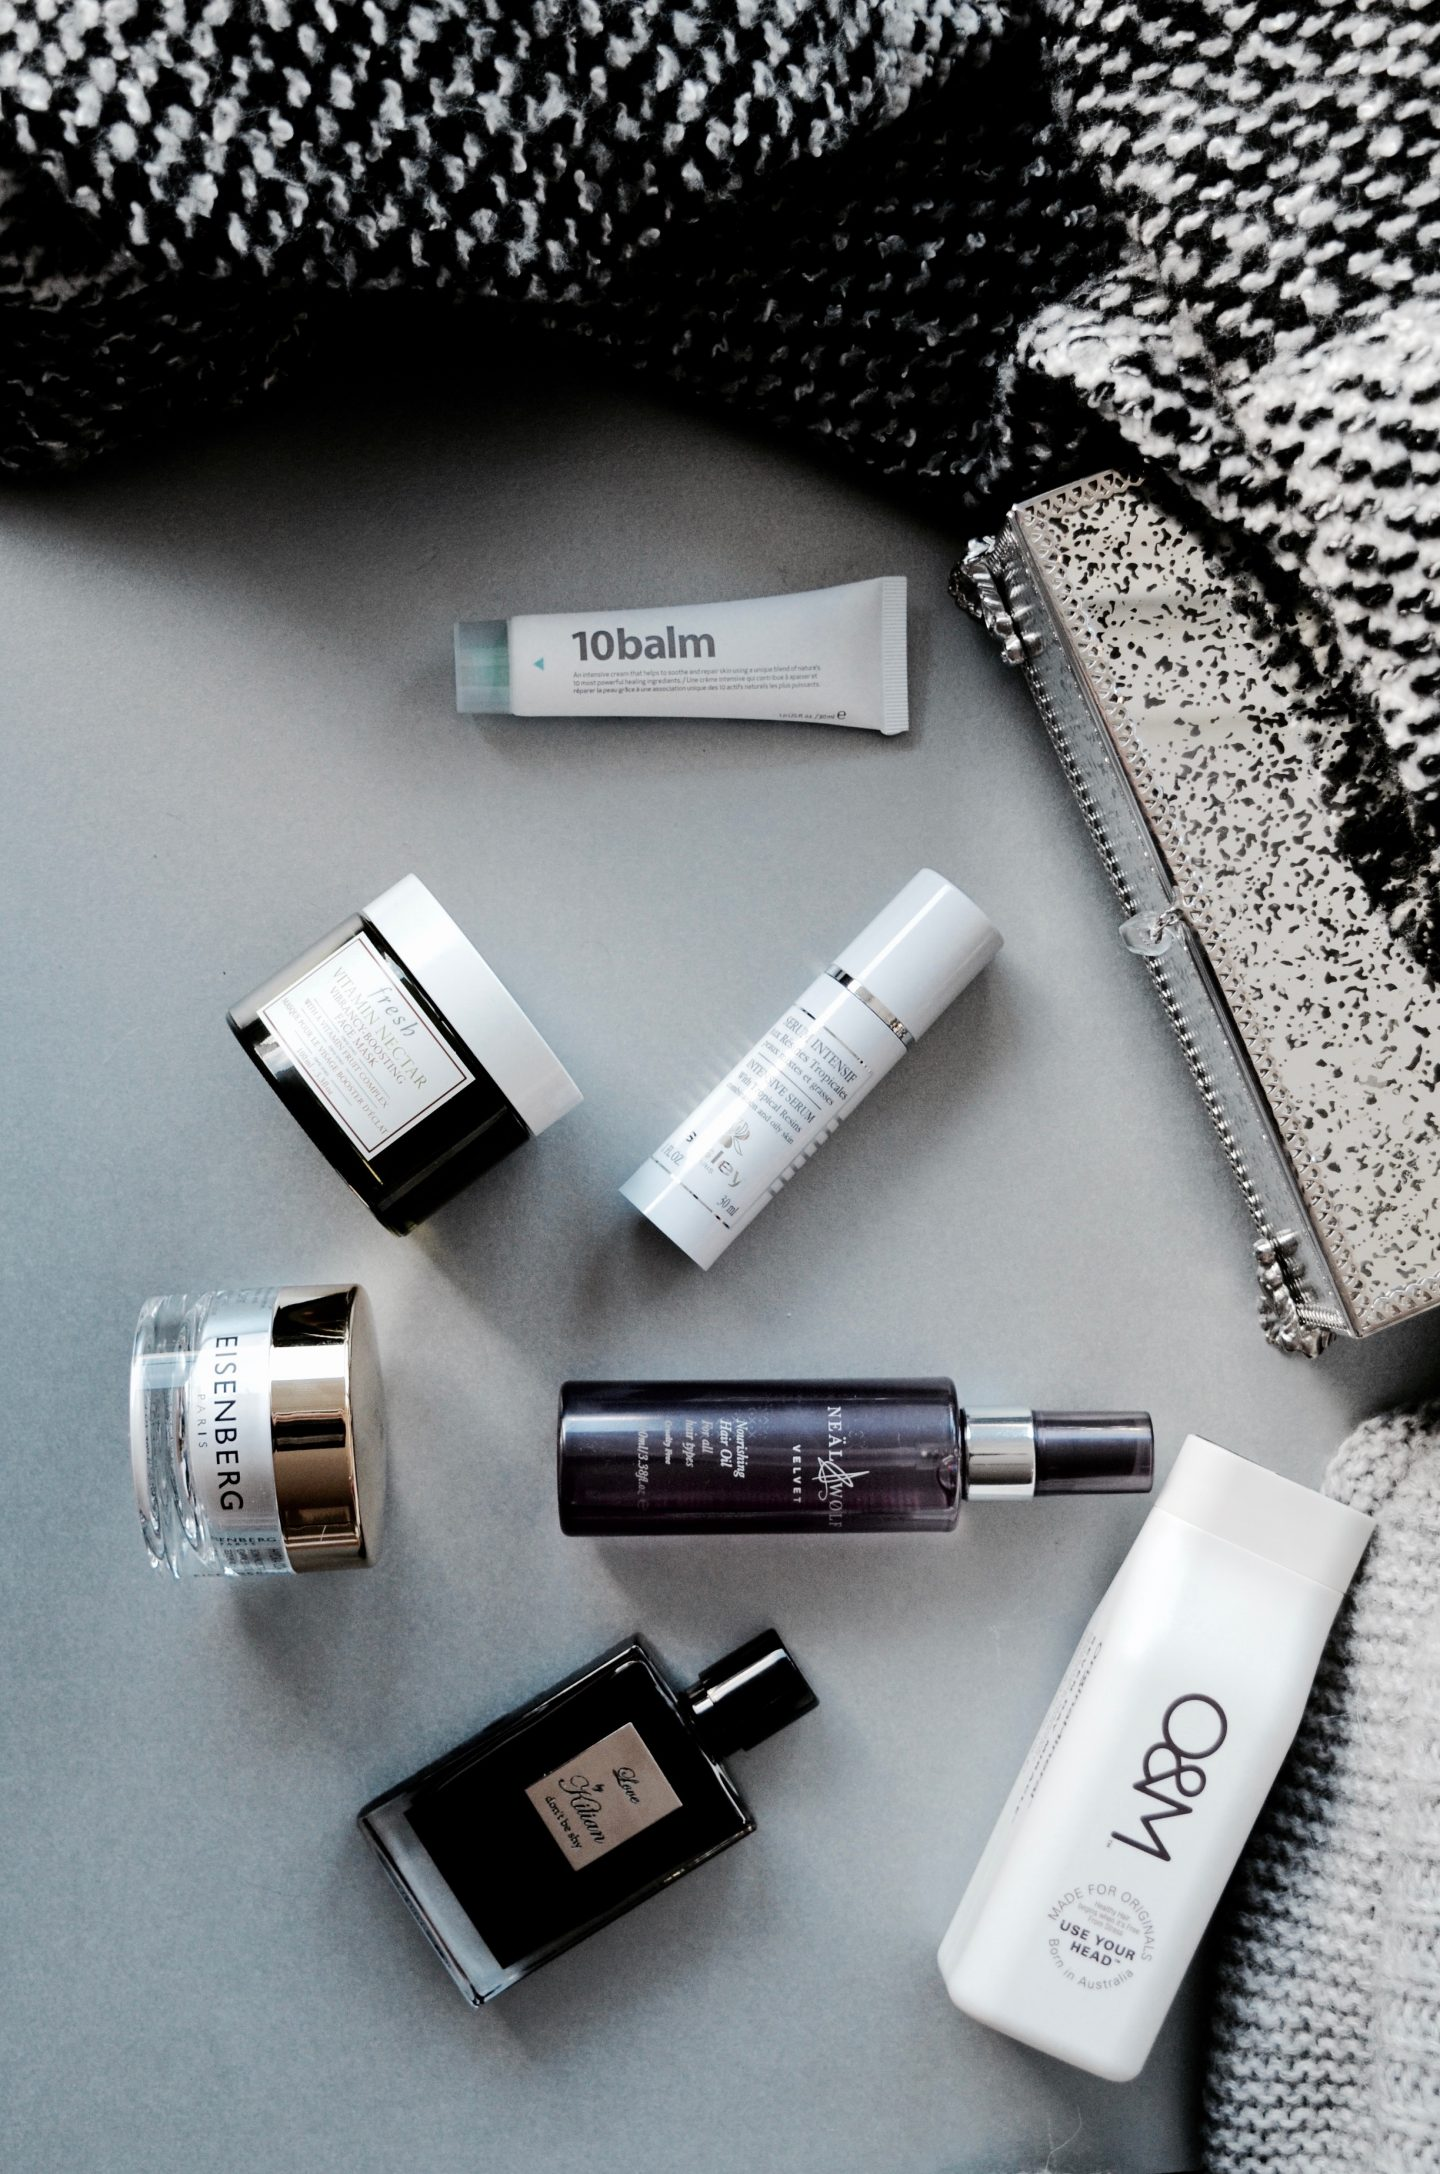 7 Beauty Products You Need To Survive This Winter